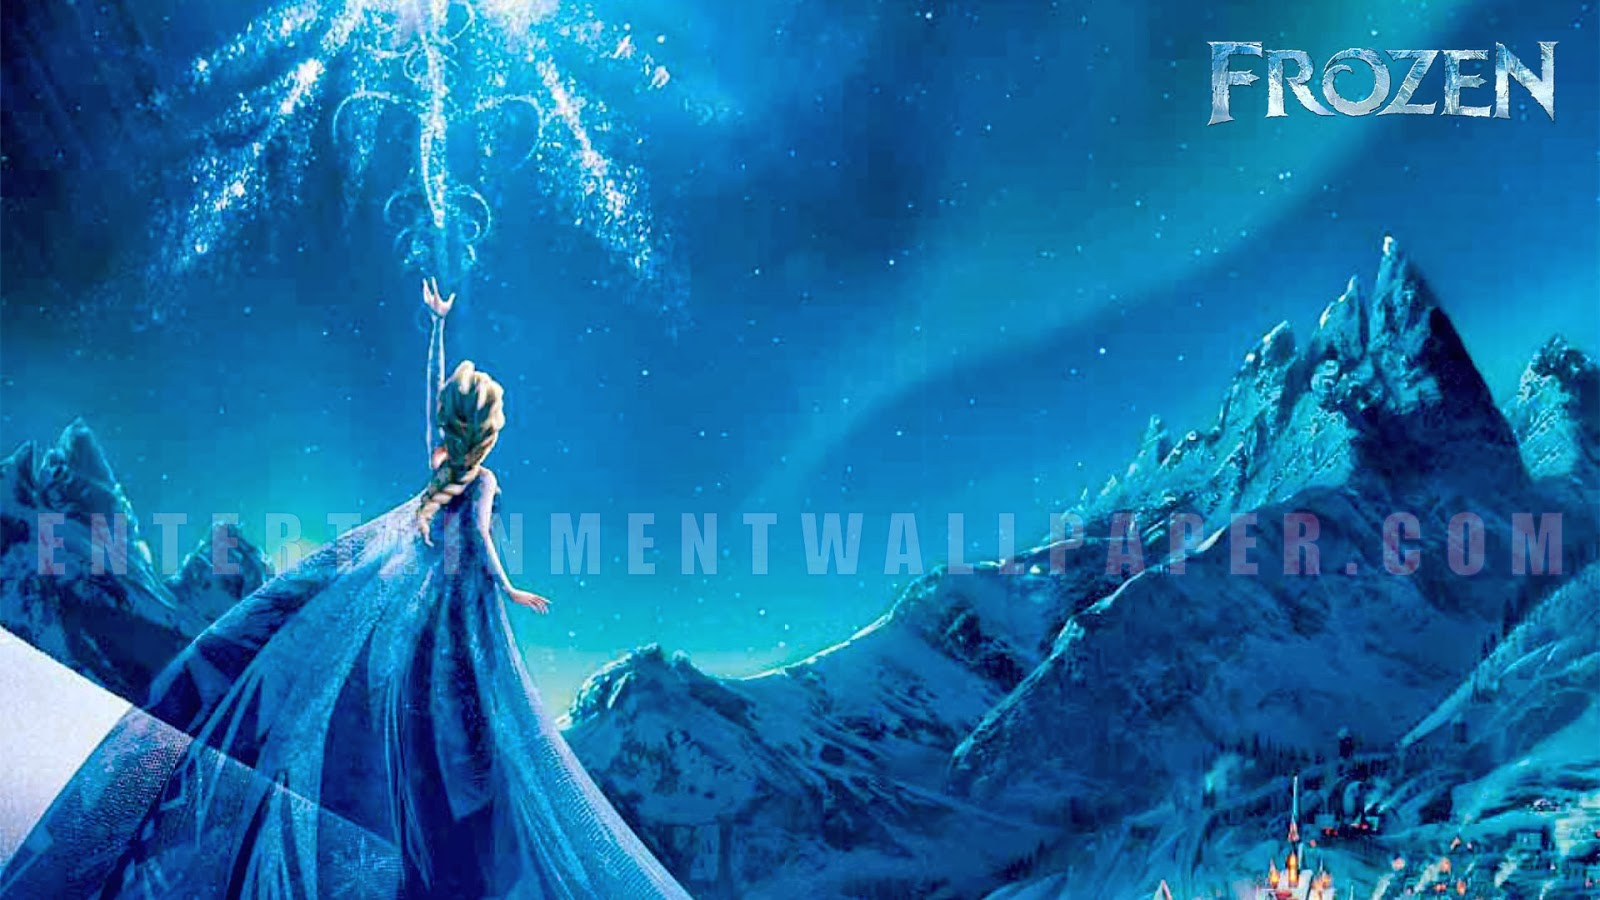 hd wallpaper frozen - photo #19